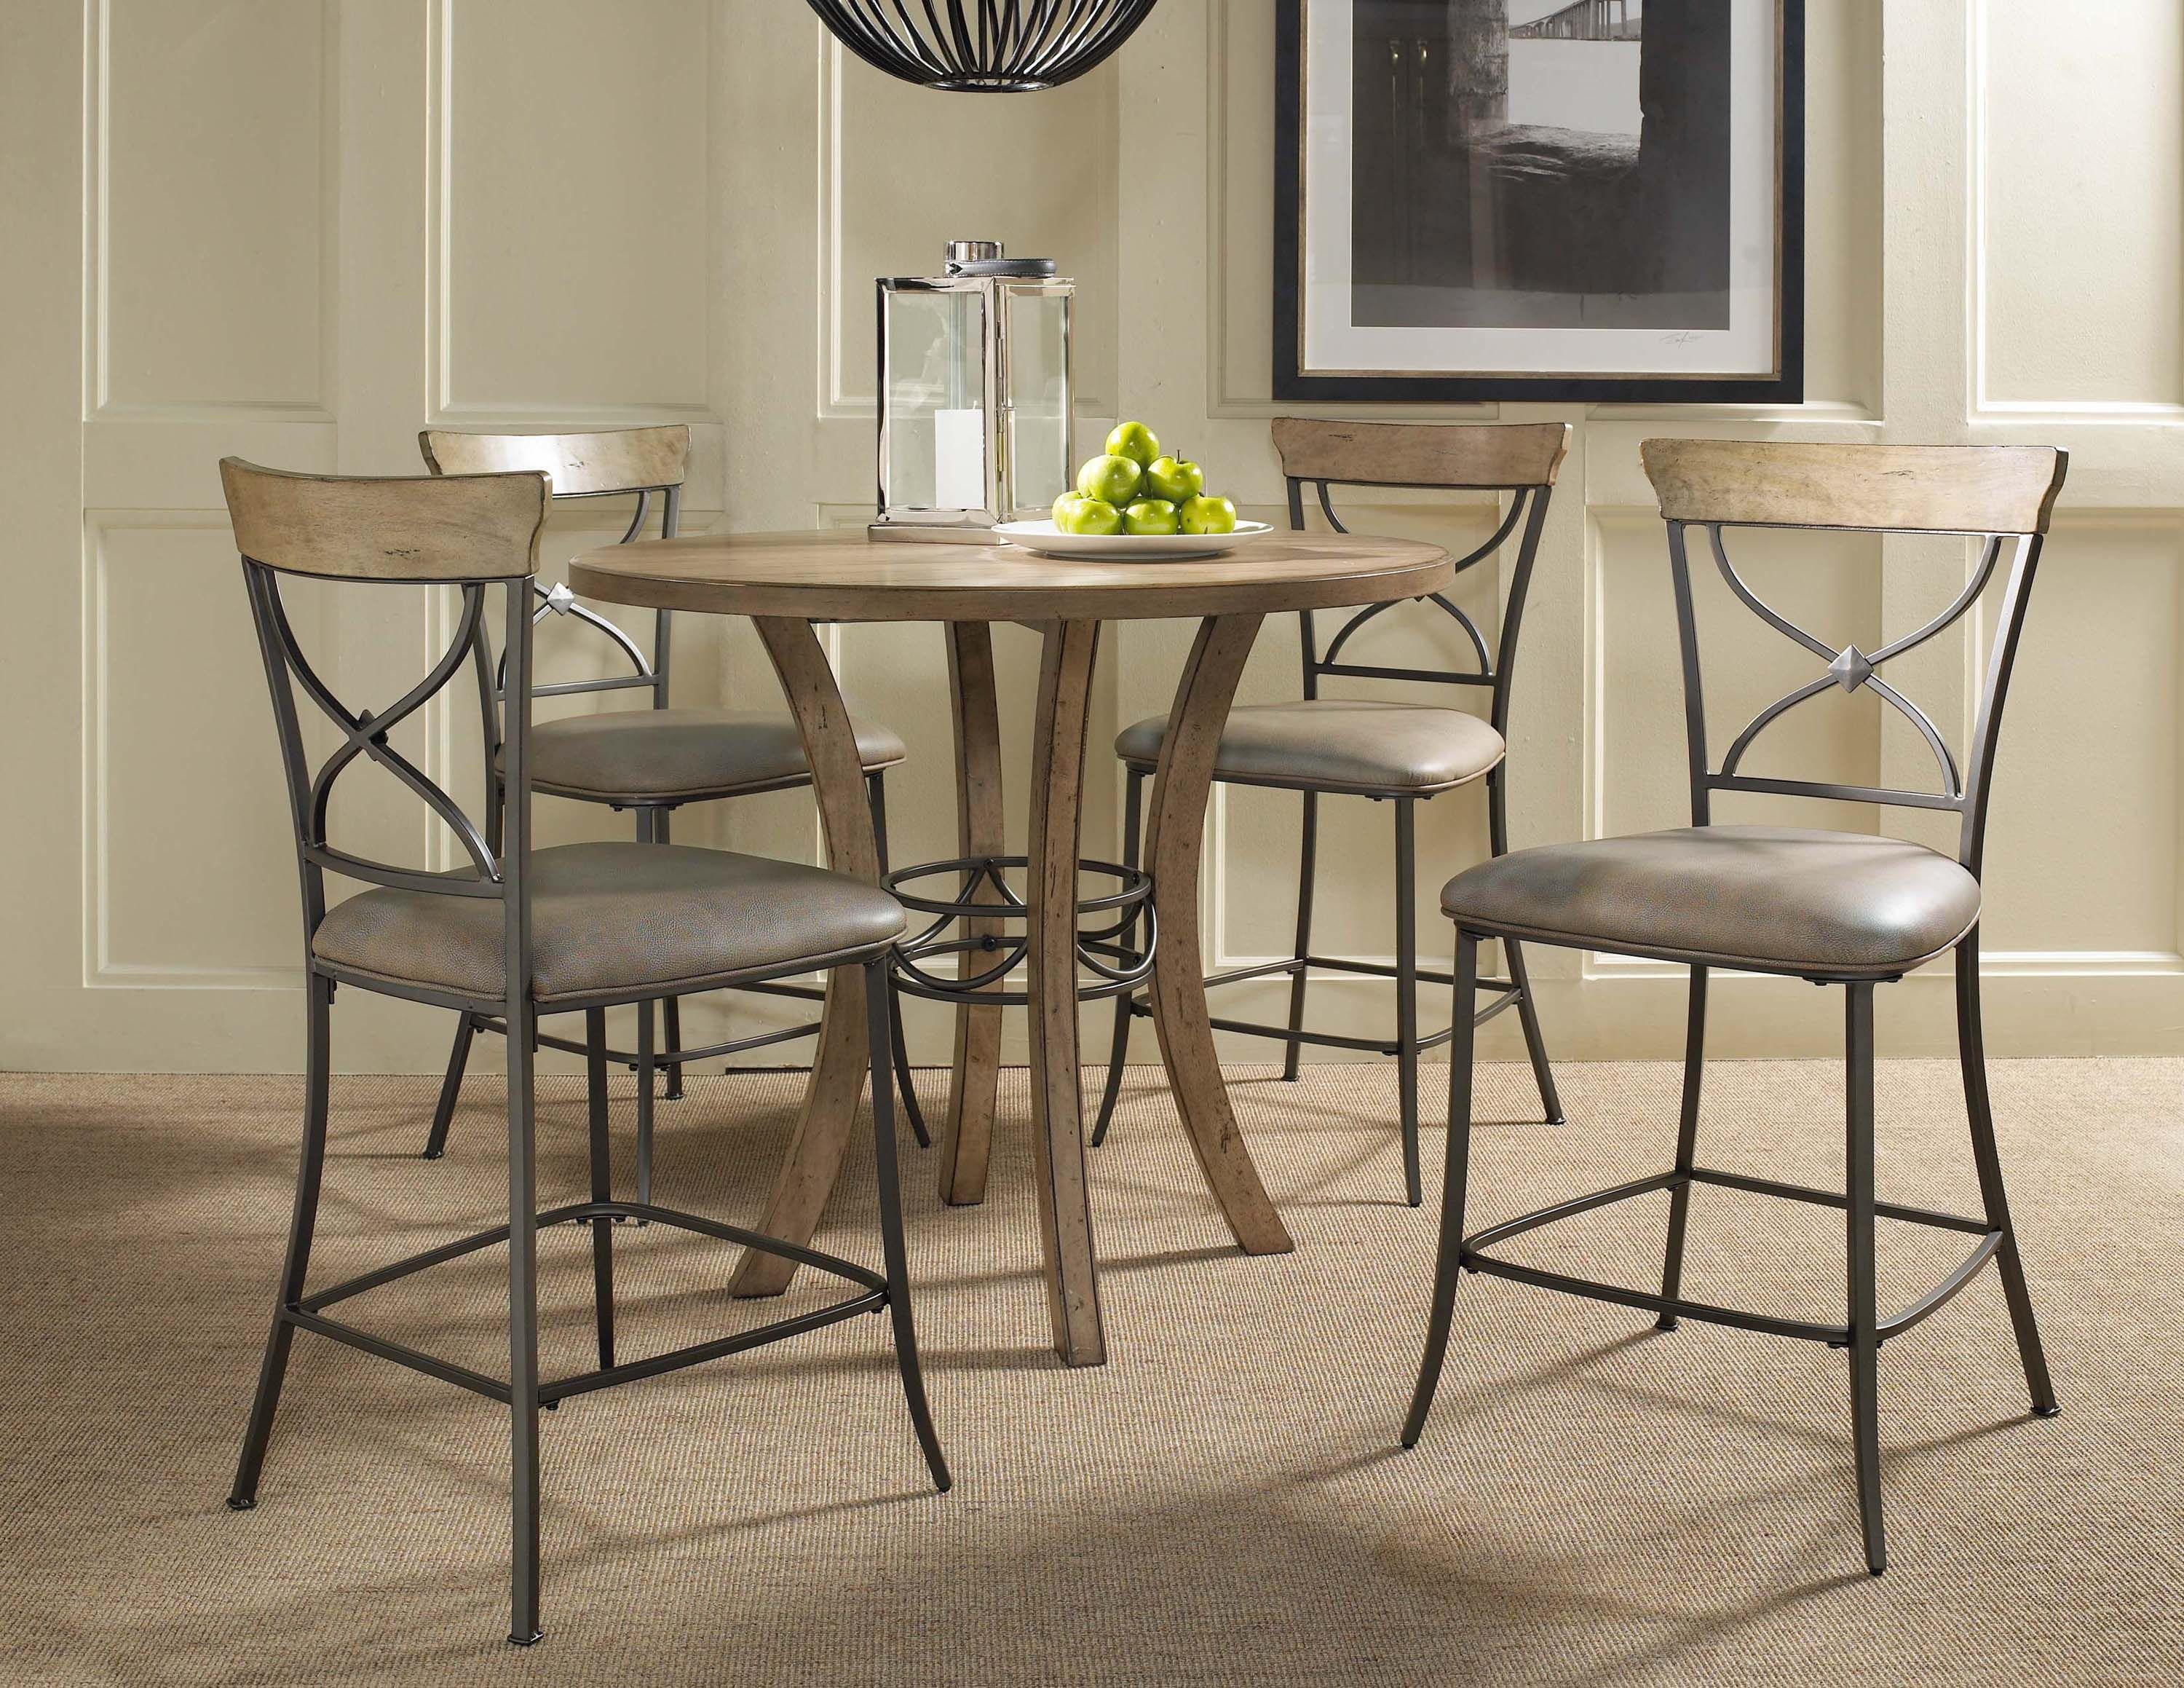 Hillsdale Furniture Charleston Wood Counter Height Round Dining Table   Top  And Legs 4670 837